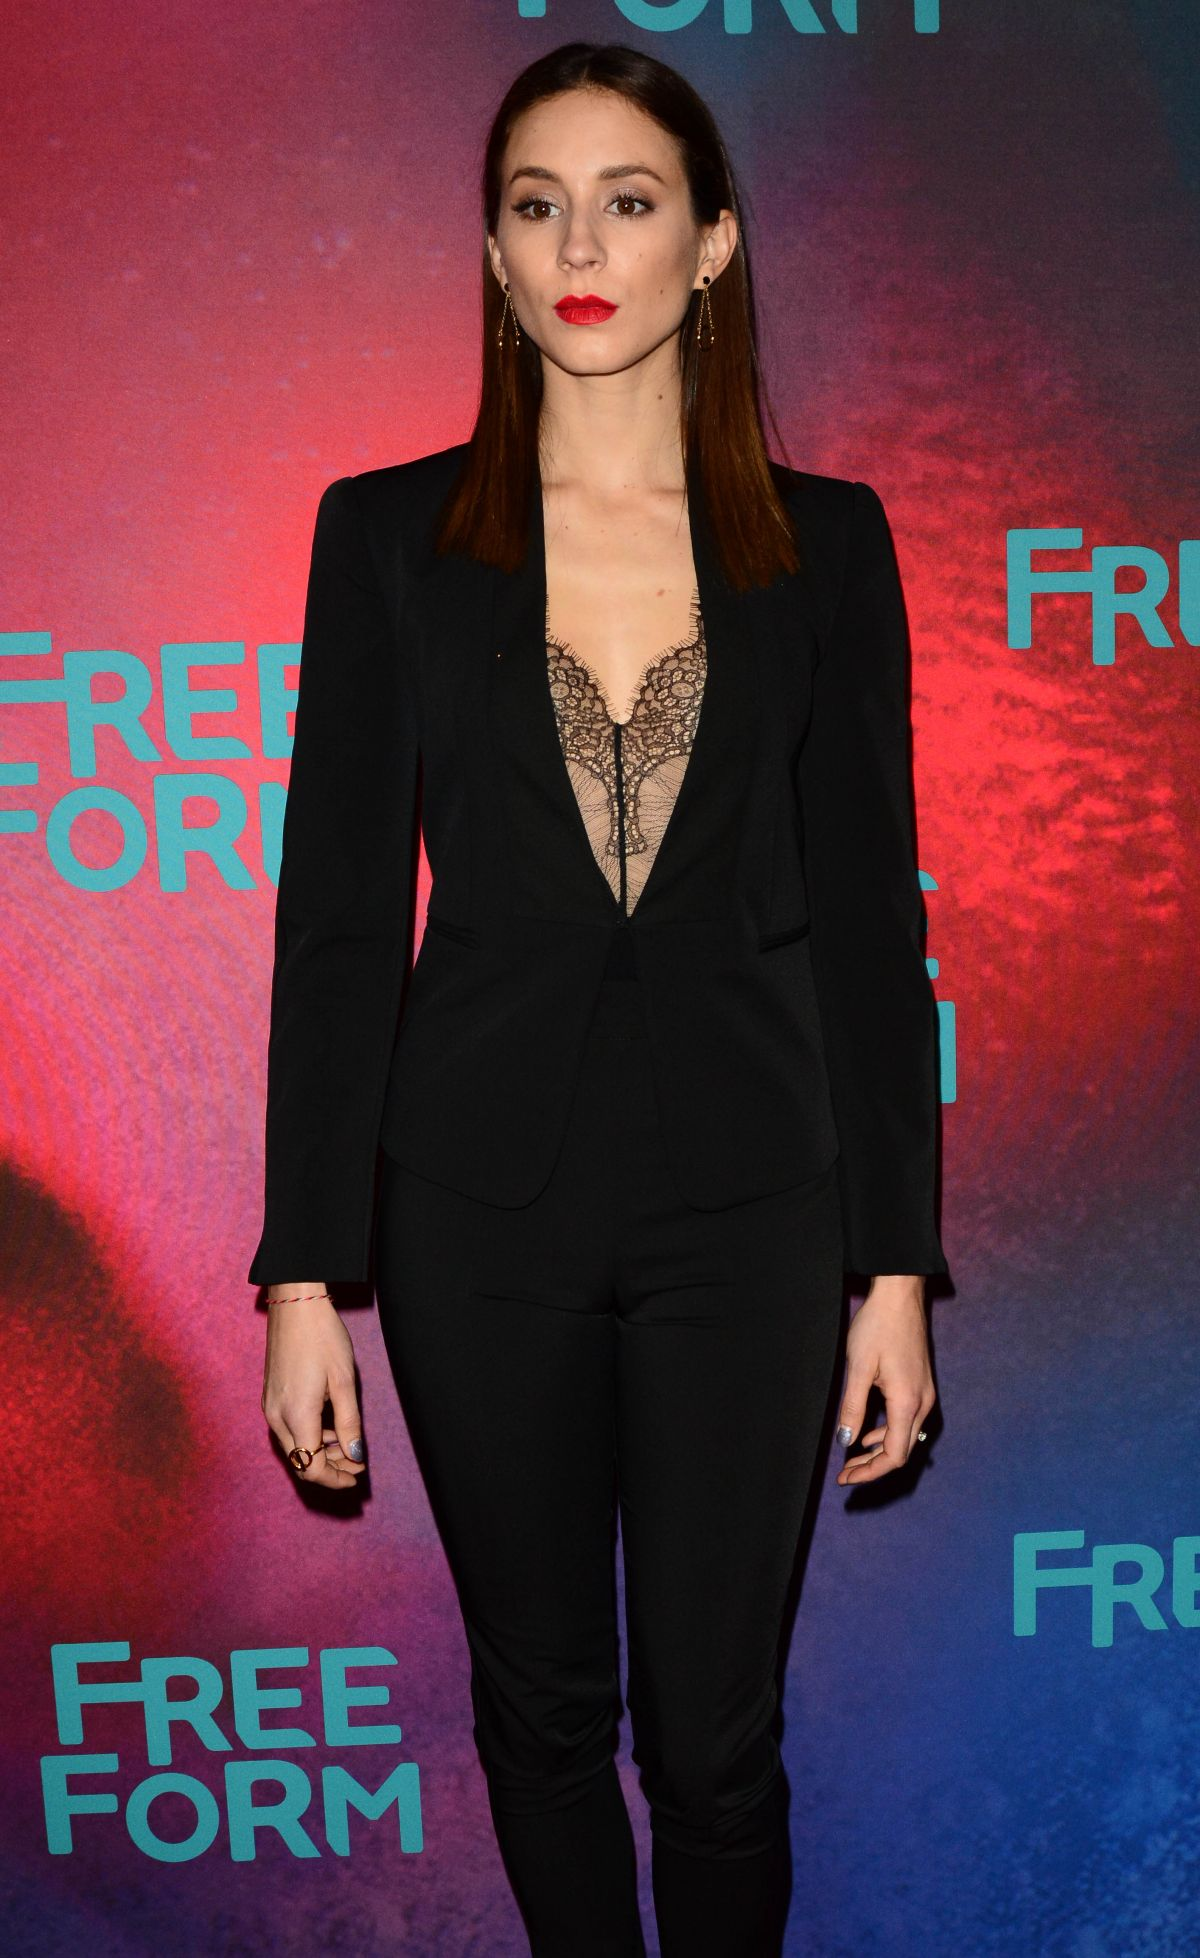 Troian Bellisario At 2017 Freeform Upfront in NYC   troian-bellisario-at-2017-freeform-upfront-in-nyc_10